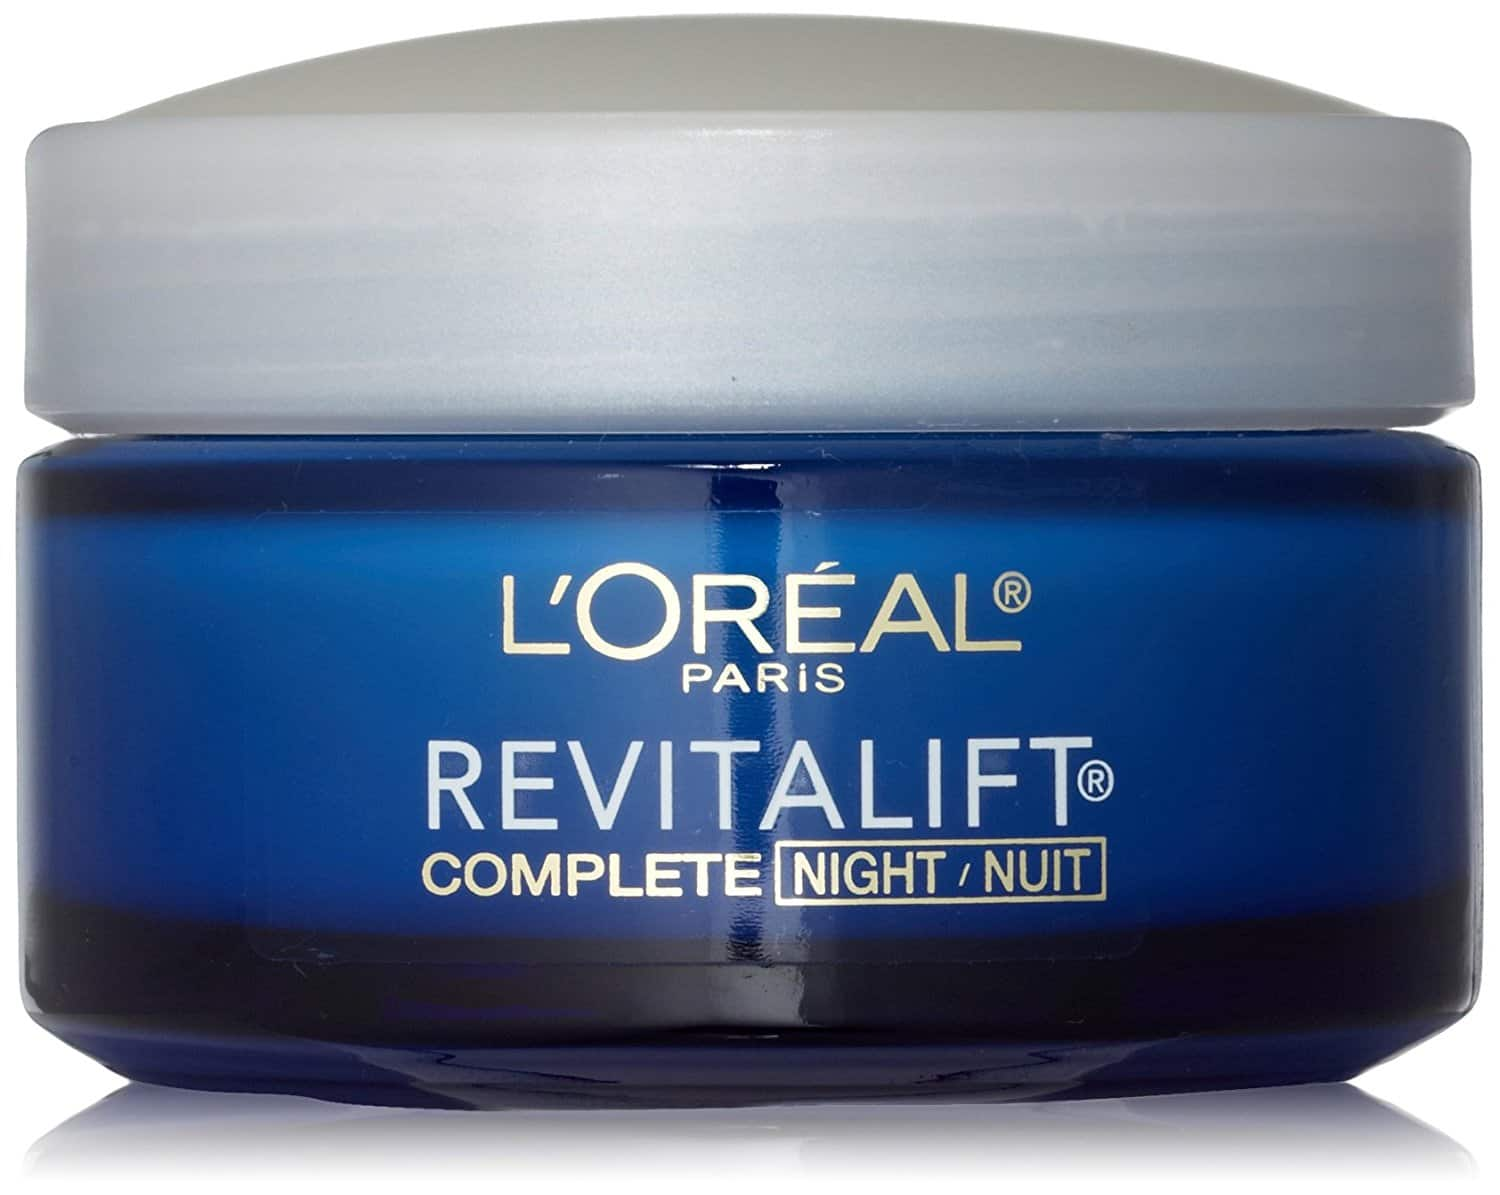 L'Oréal Paris Revitalift Anti-Wrinkle + Firming Night Cream Anti-Aging Pro Retinol, 1.7 fl oz $7.82 AC S&S@amazon